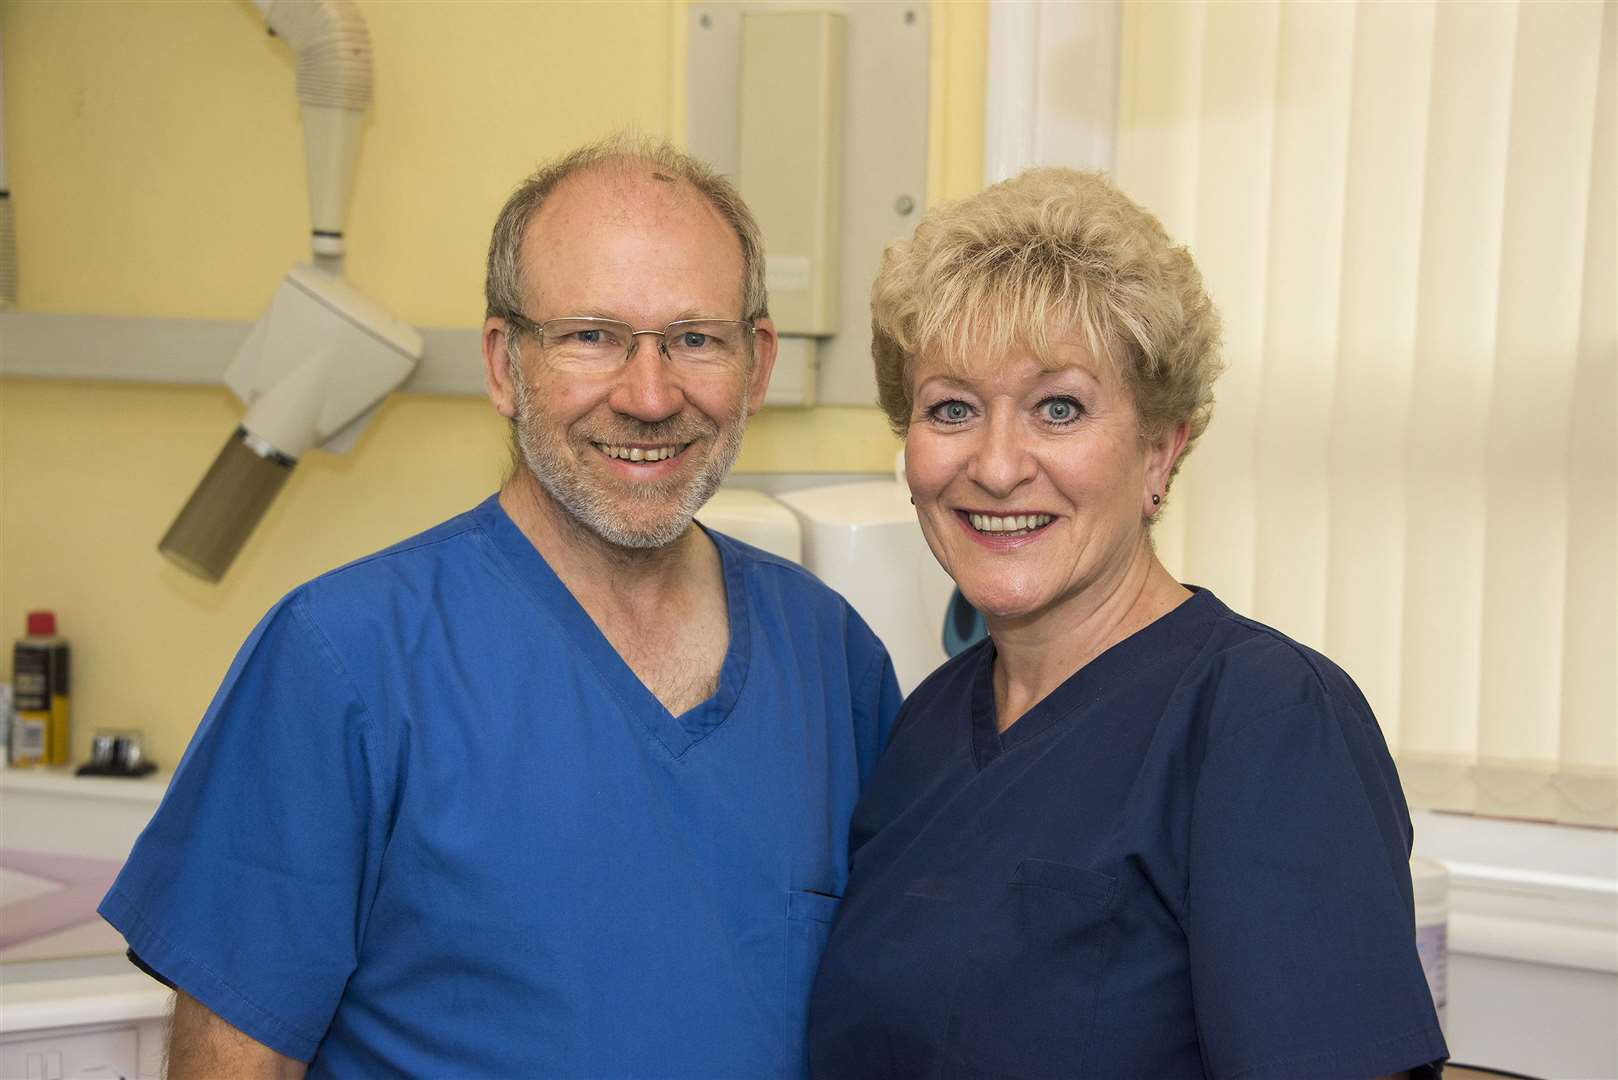 Dr Robert Bradbury, the principal dentist at Bank Buildings Dental Surgery in Sudbury, and nurse Elaine Covey, are both set to retire on June 29, having worked together at the practice for more than 30 years. Picture by Mark Westley (2704353)